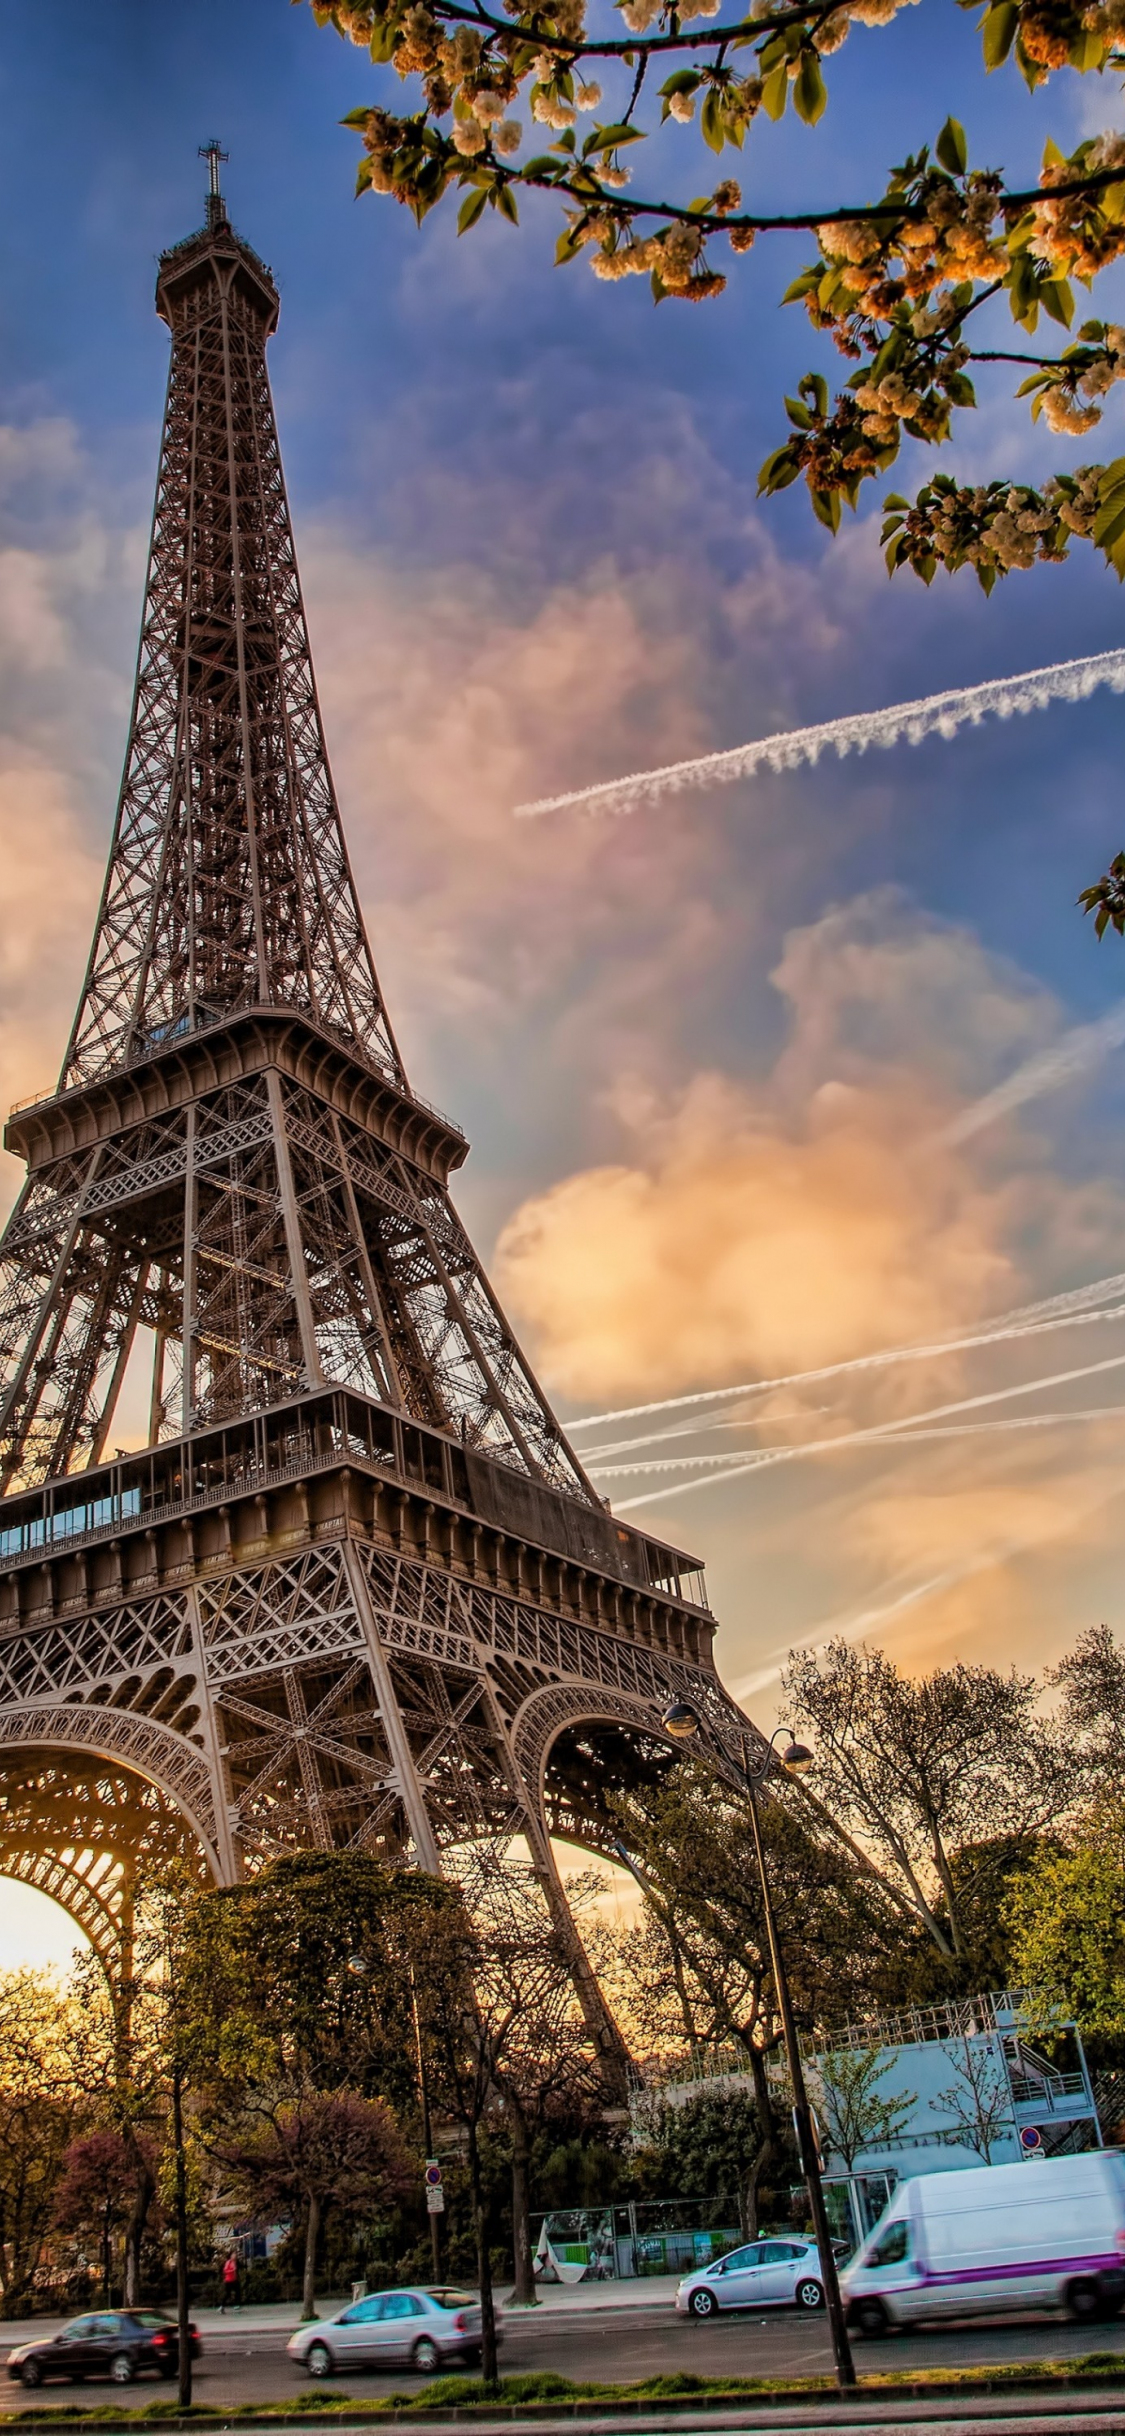 Download 1125x2436 Wallpaper Eiffel Tower Architecture